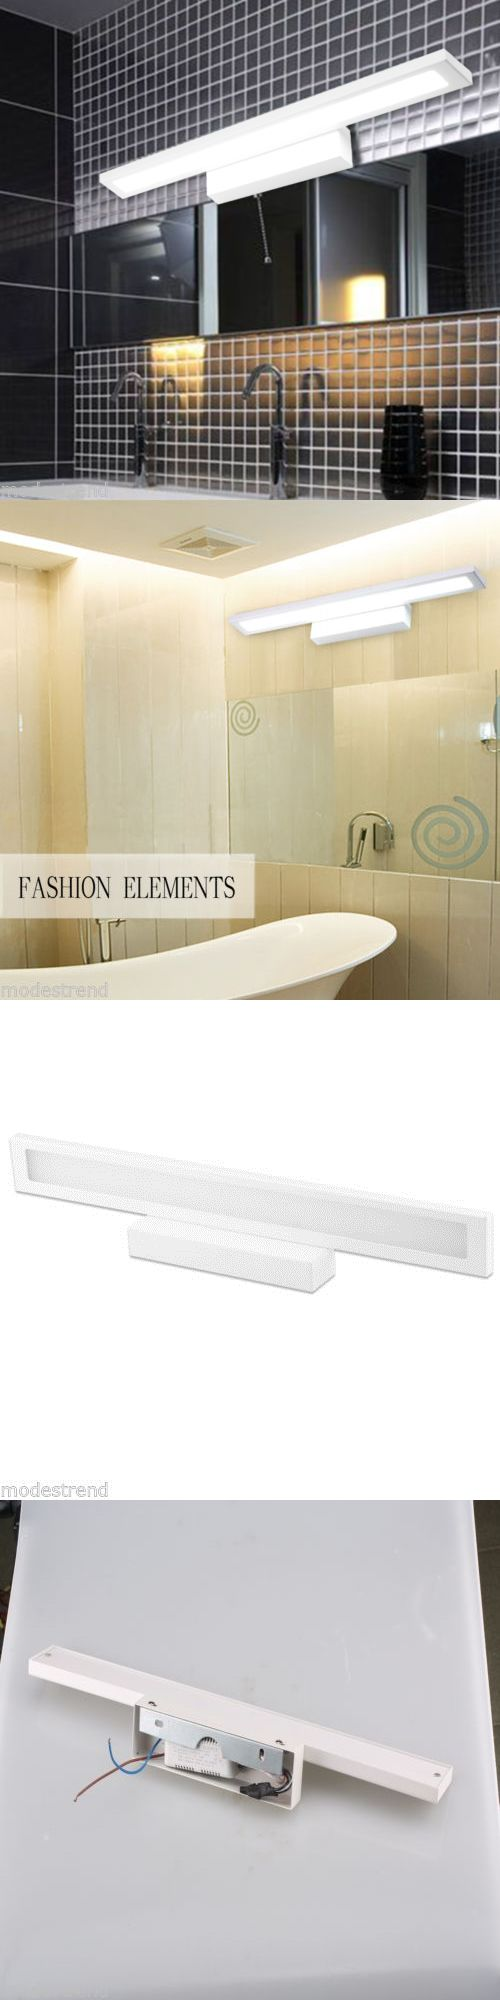 Lamps And Lighting: New 18W White Modern Bathroom Make Up Mirror Light Front Led Lighting Waterproof -> BUY IT NOW ONLY: $32.99 on eBay!